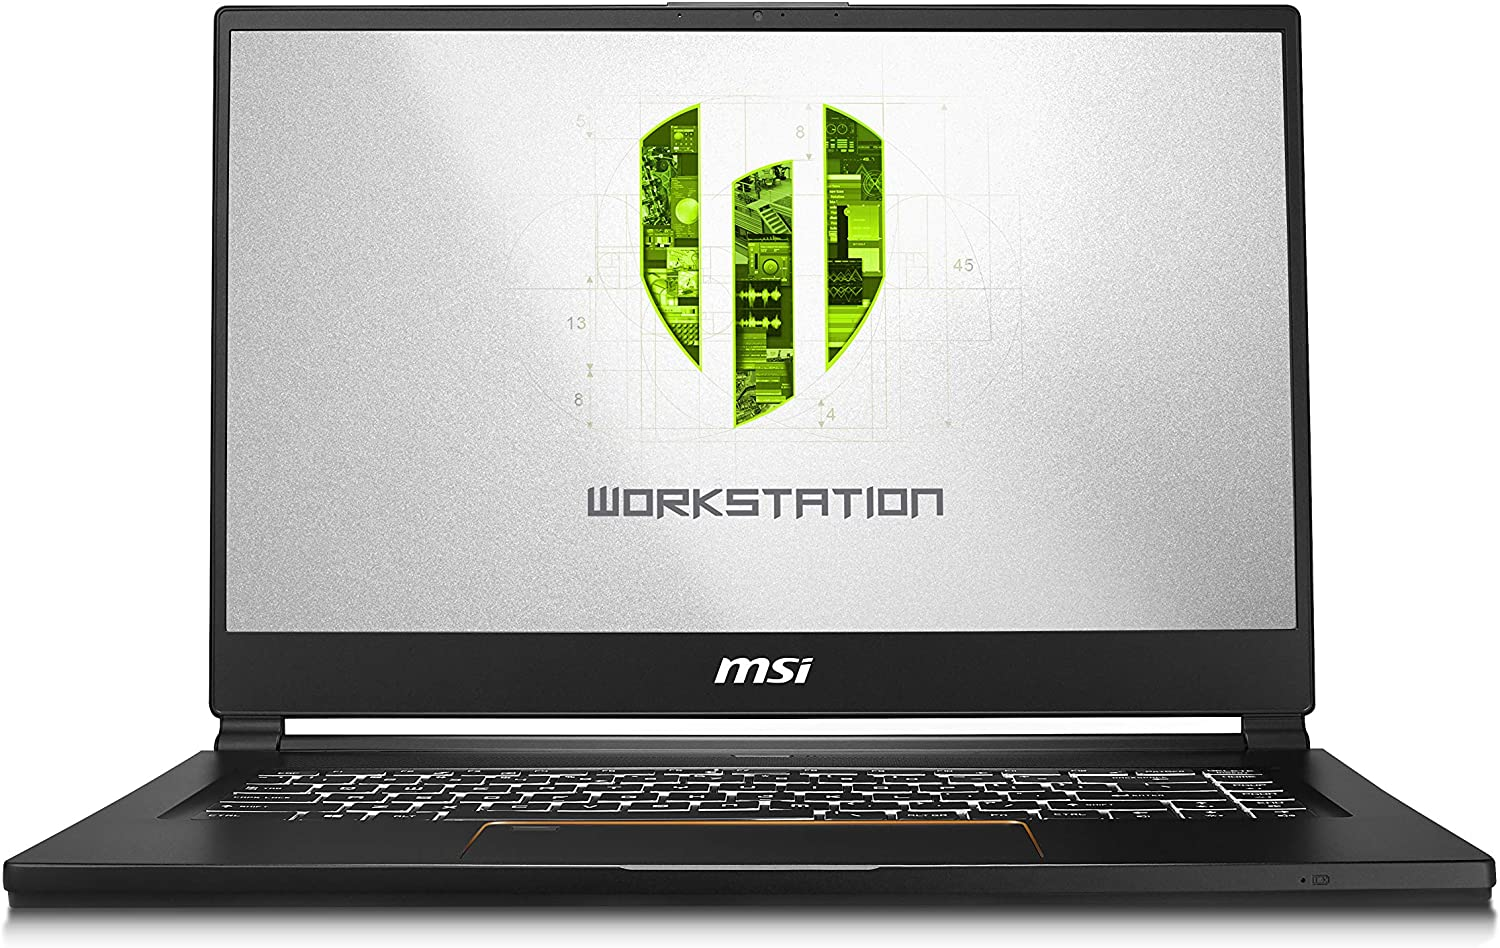 "MSI WS65 9Tk-688 15.6"" Thin and Light Mobile Workstation, Intel Core i7-9750H, NVIDIA Quadro RTX 3000, 32GB, 512G NVMe SSD, Win10 Pro"